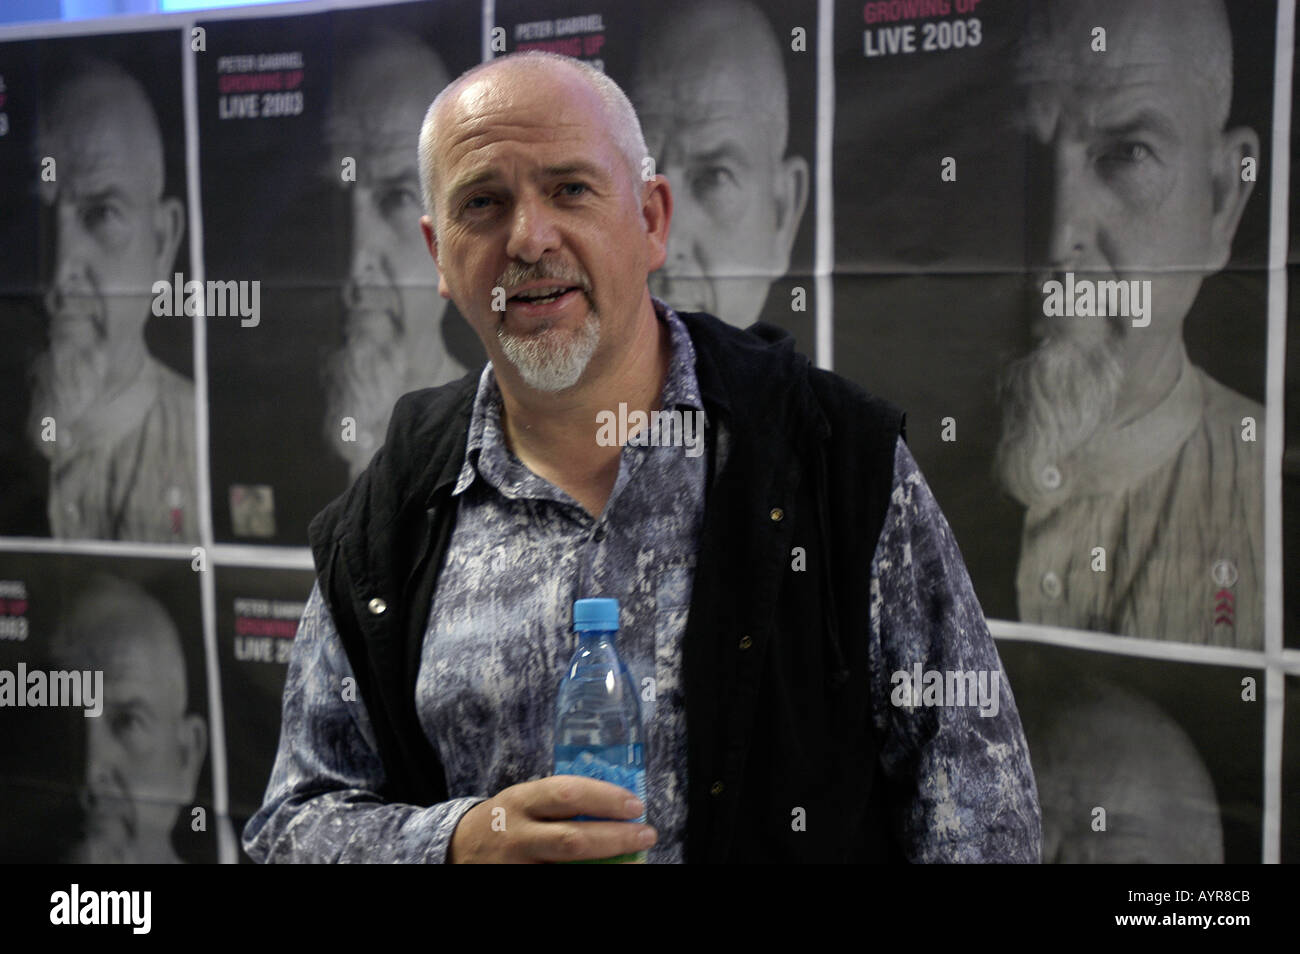 Peter Gabriel Stock Photos & Peter Gabriel Stock Images - Alamy